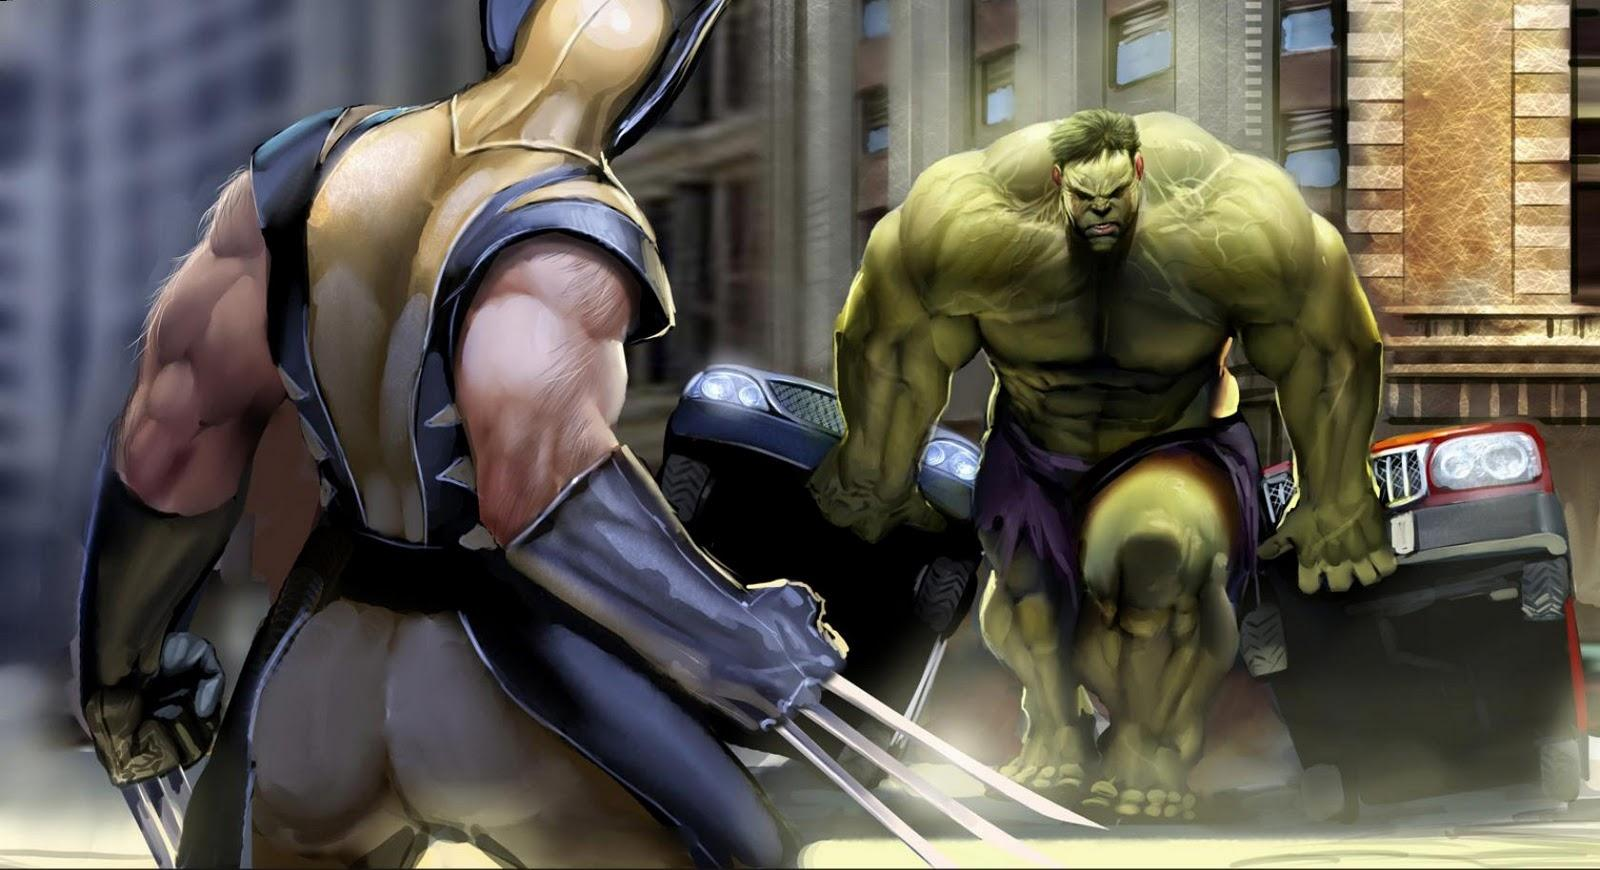 Hulk Comics wallpapers HD quality